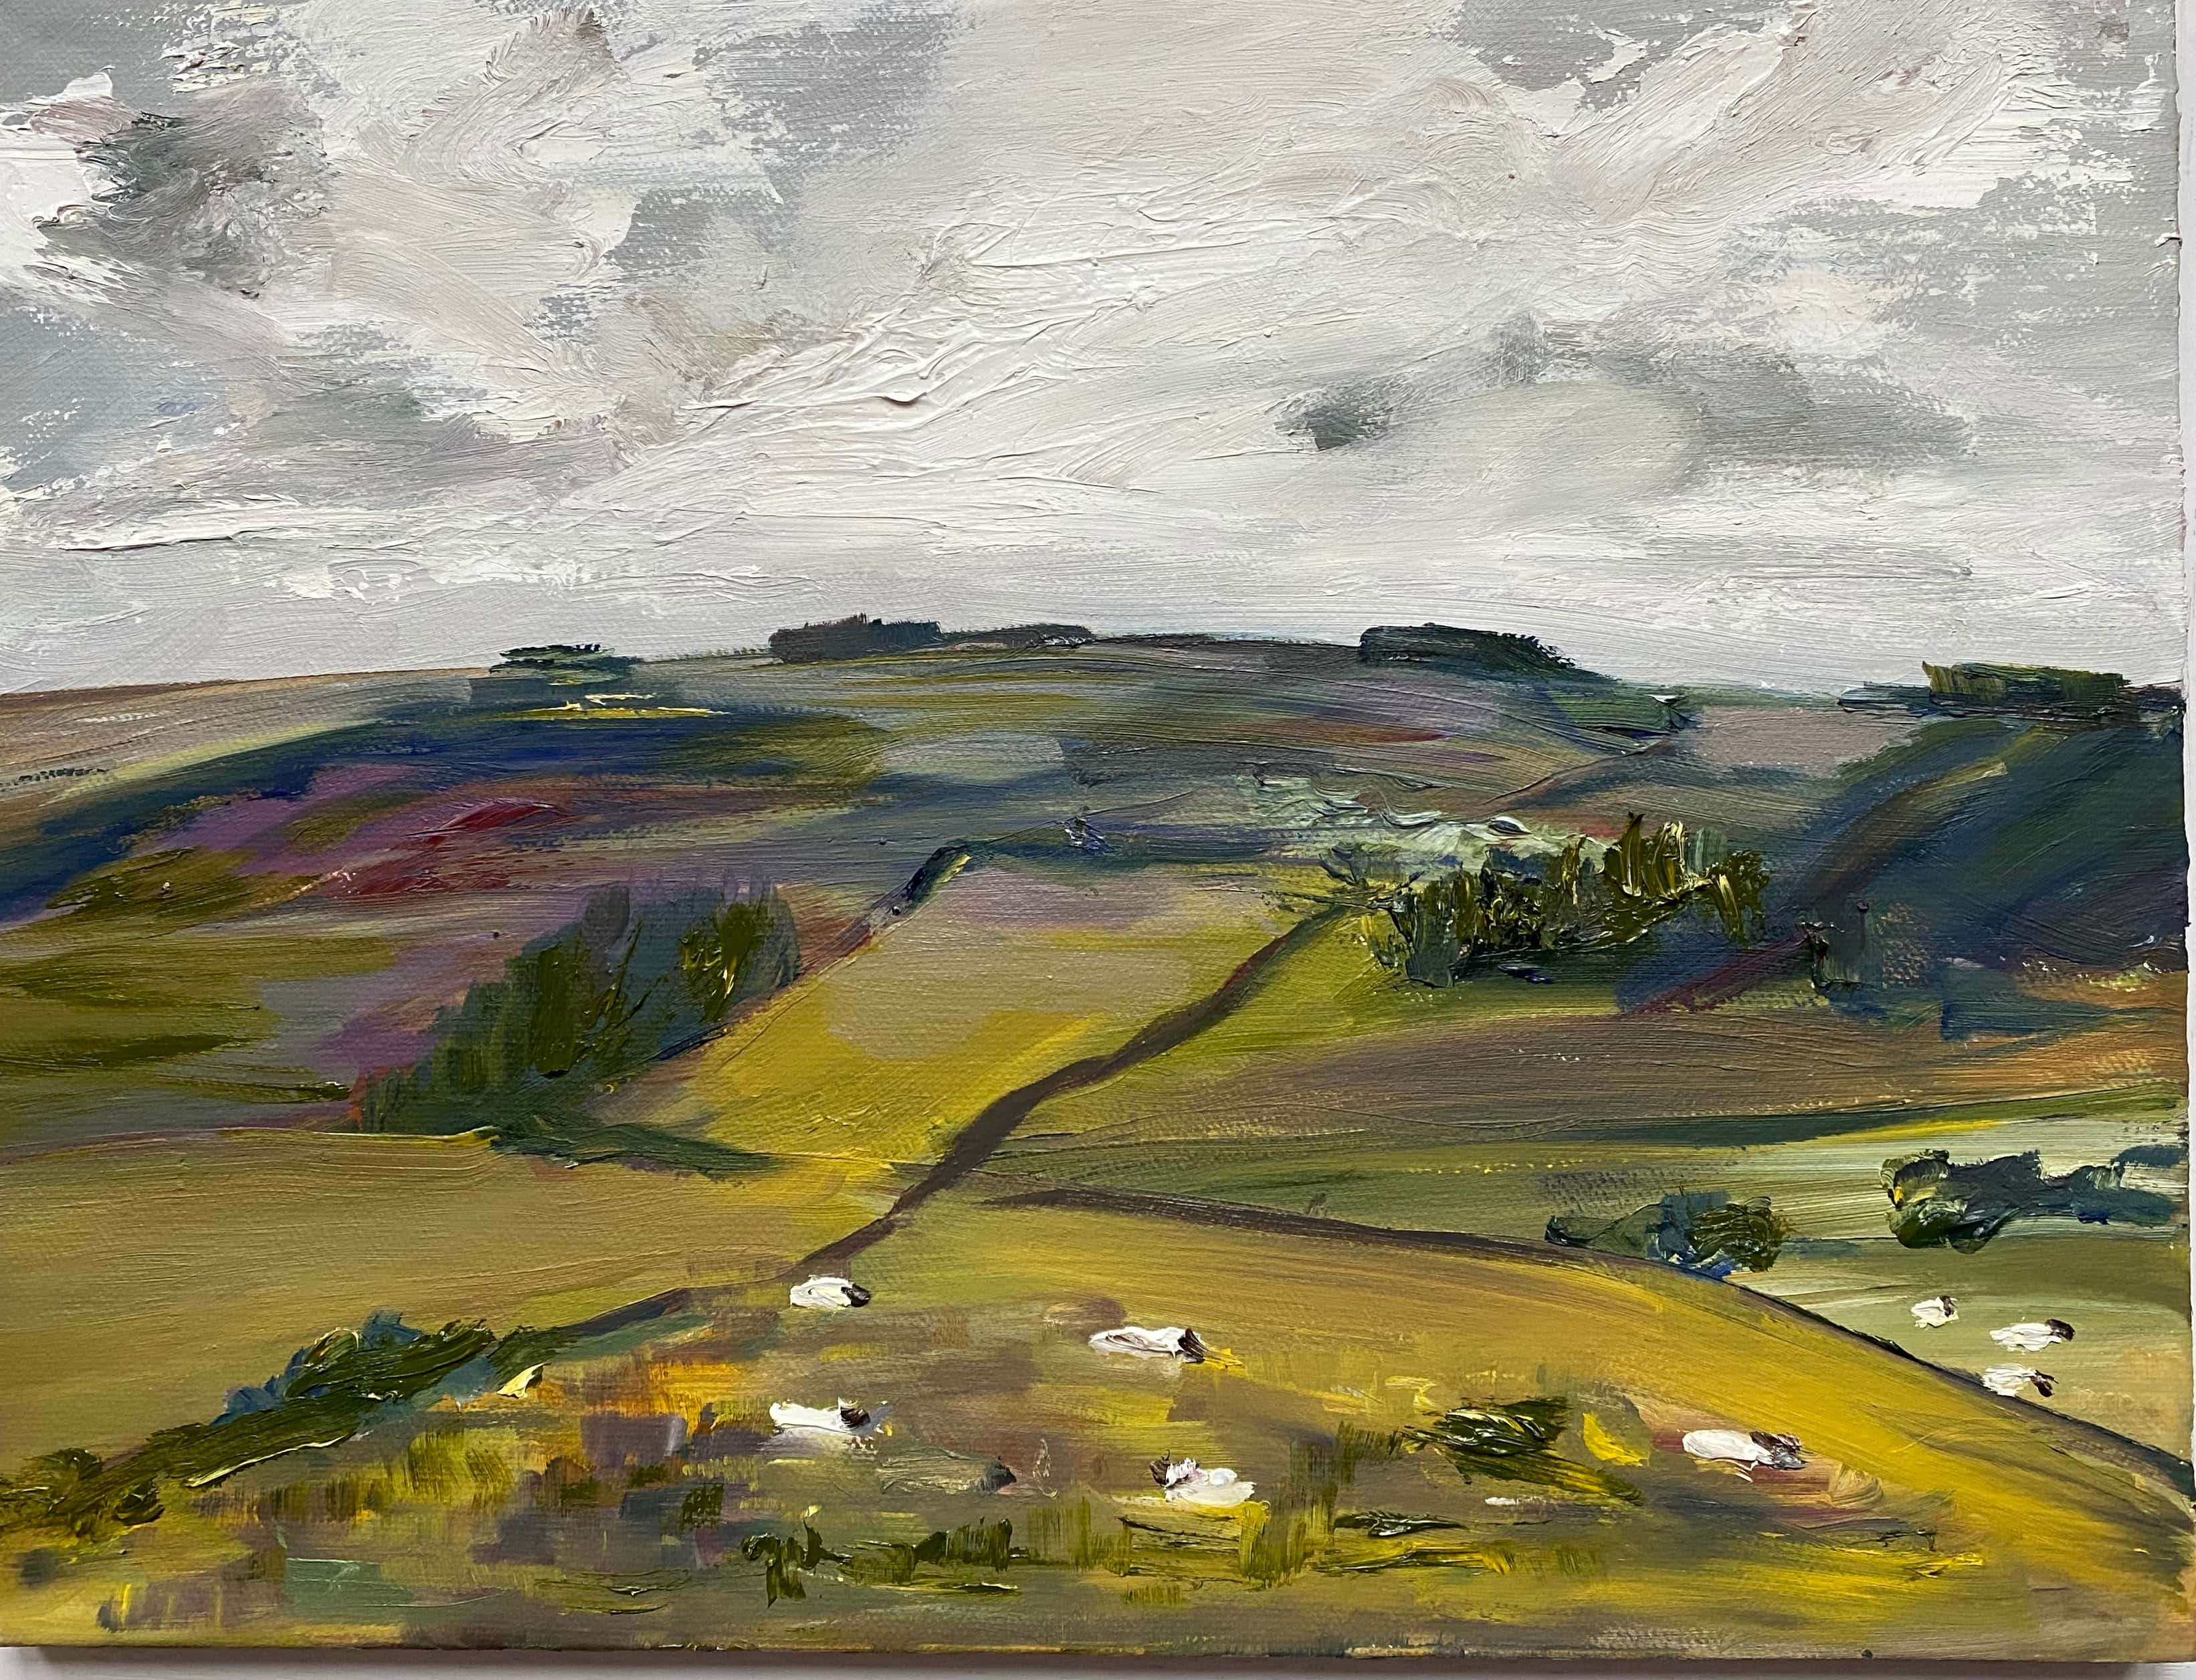 Oil painting of sheep in the landscape